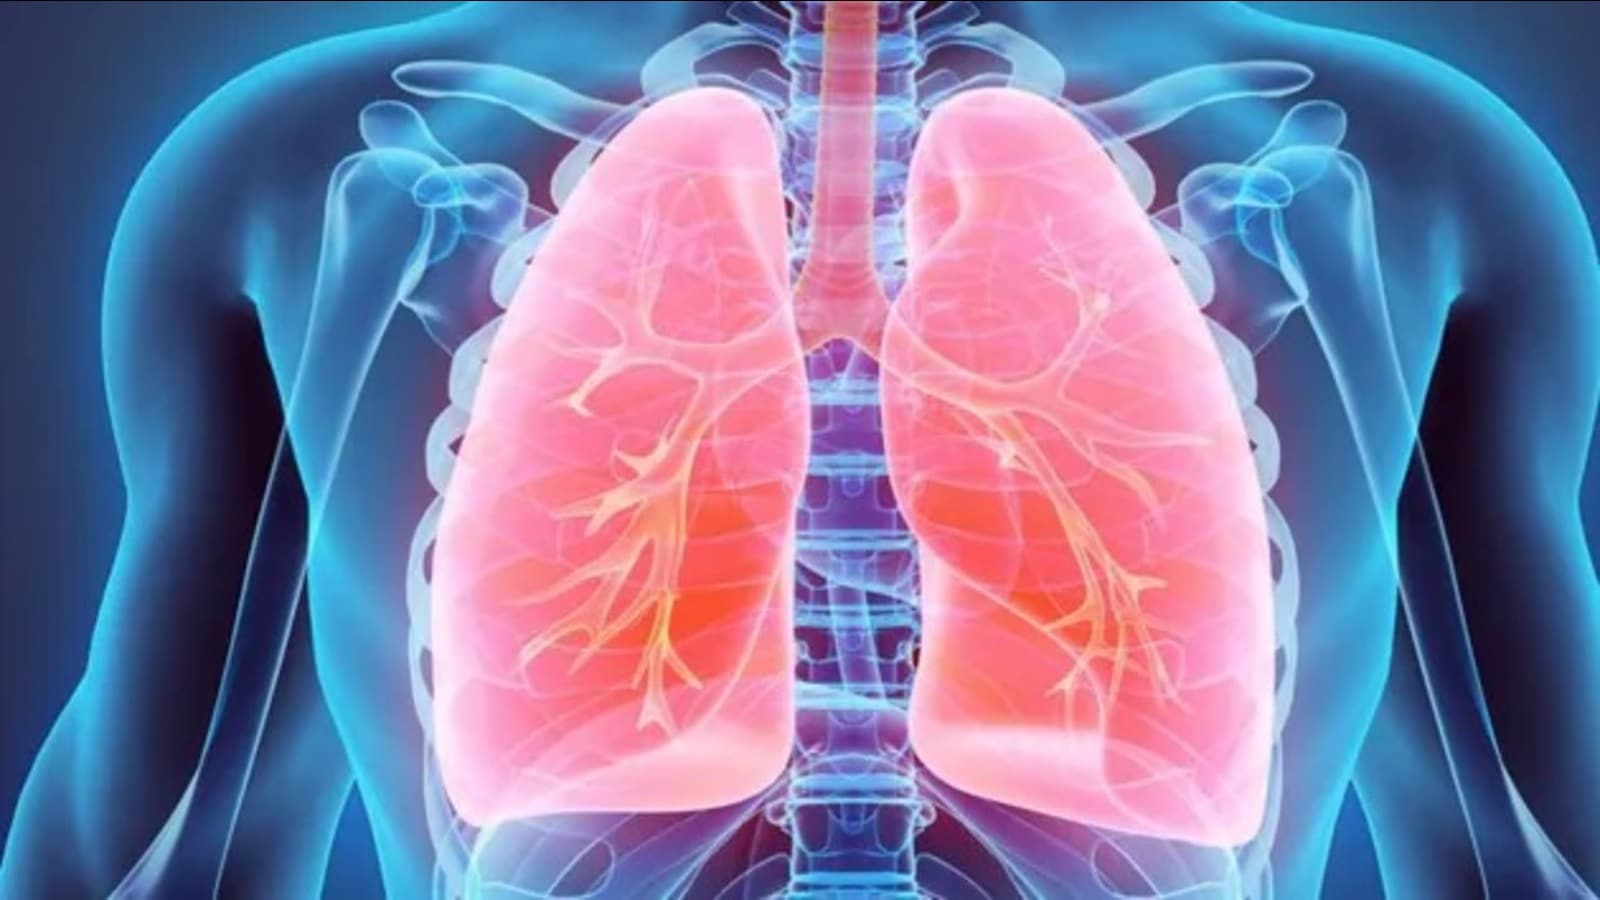 World Lung day: Persistent coughing not to be ignored, says doctor